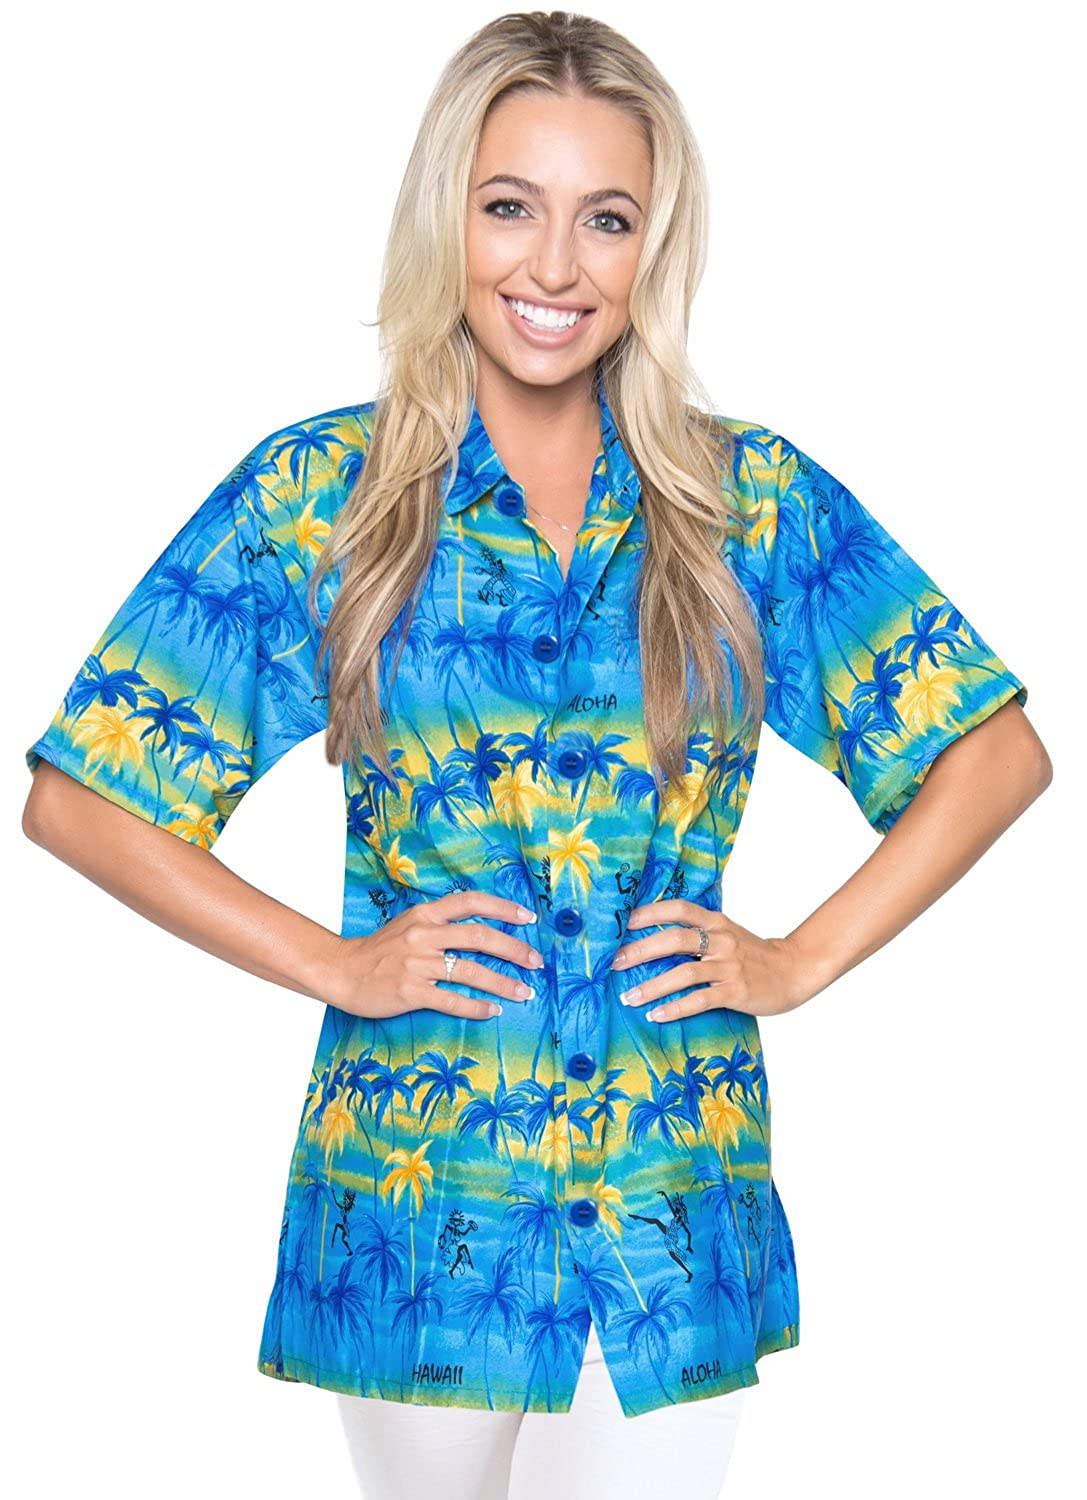 17dcc4f3529 Women Hawaiian Shirts - Shaka Time Hawaii Clothing Store